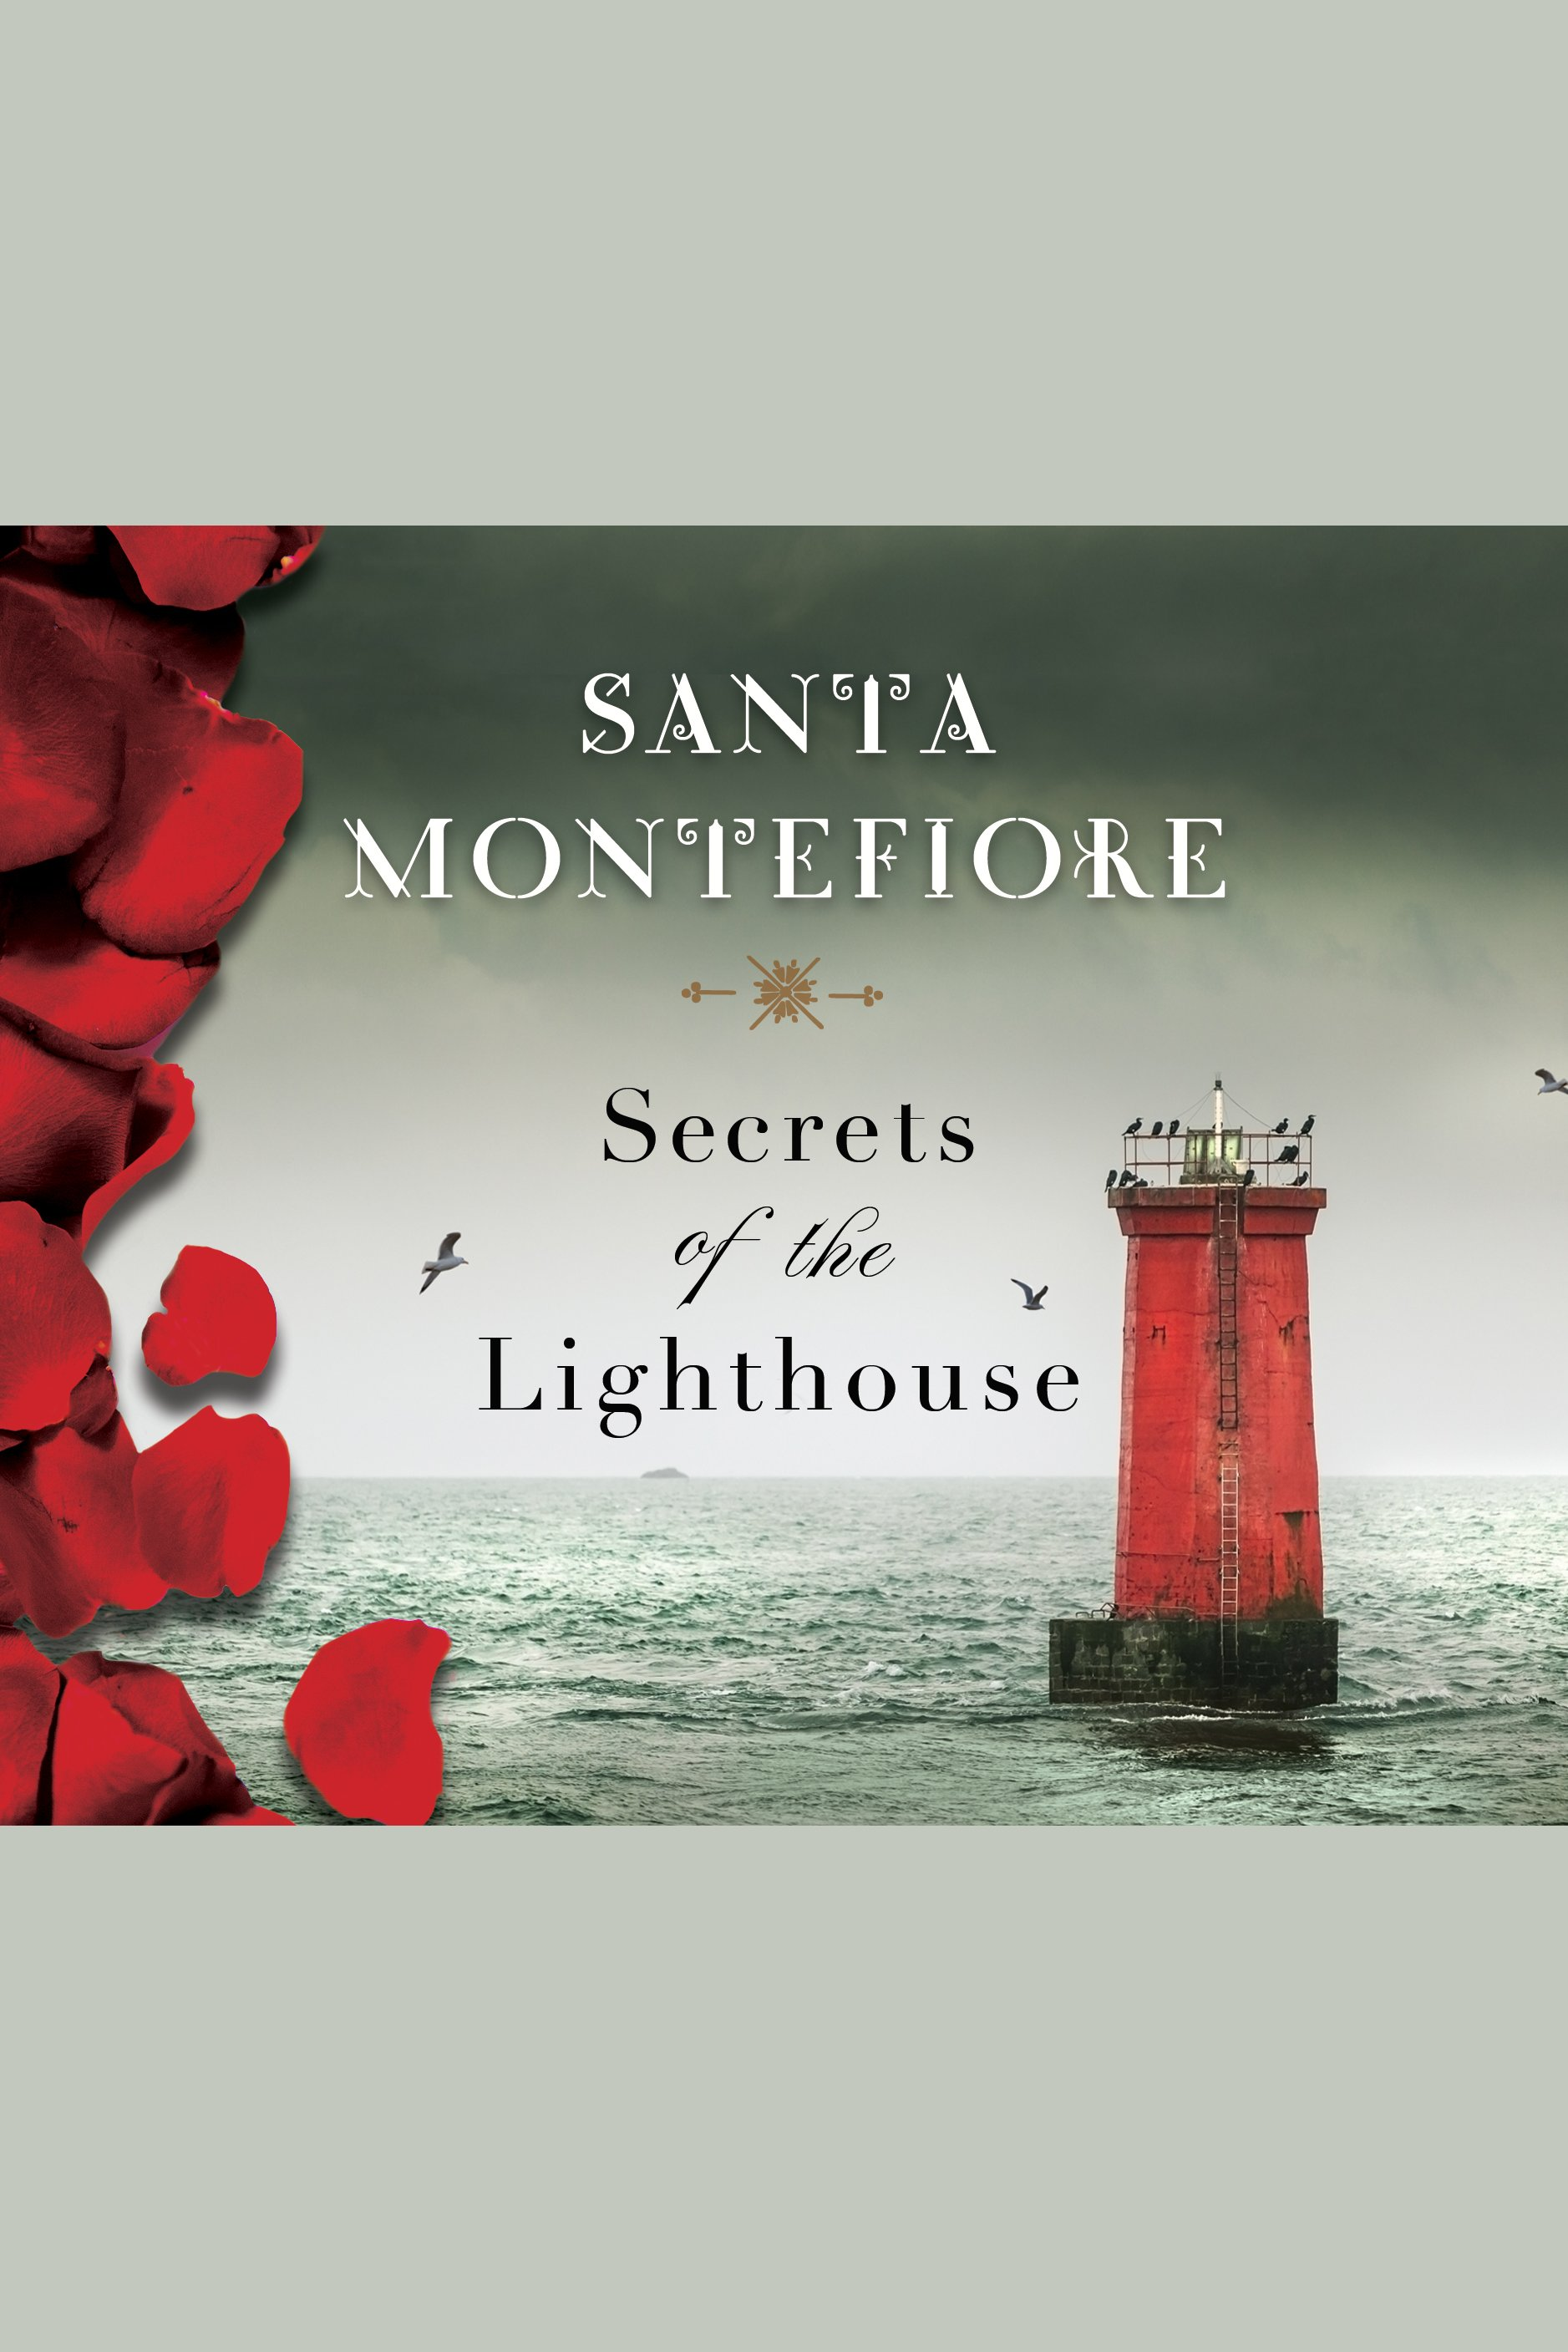 Secrets of the lighthouse cover image